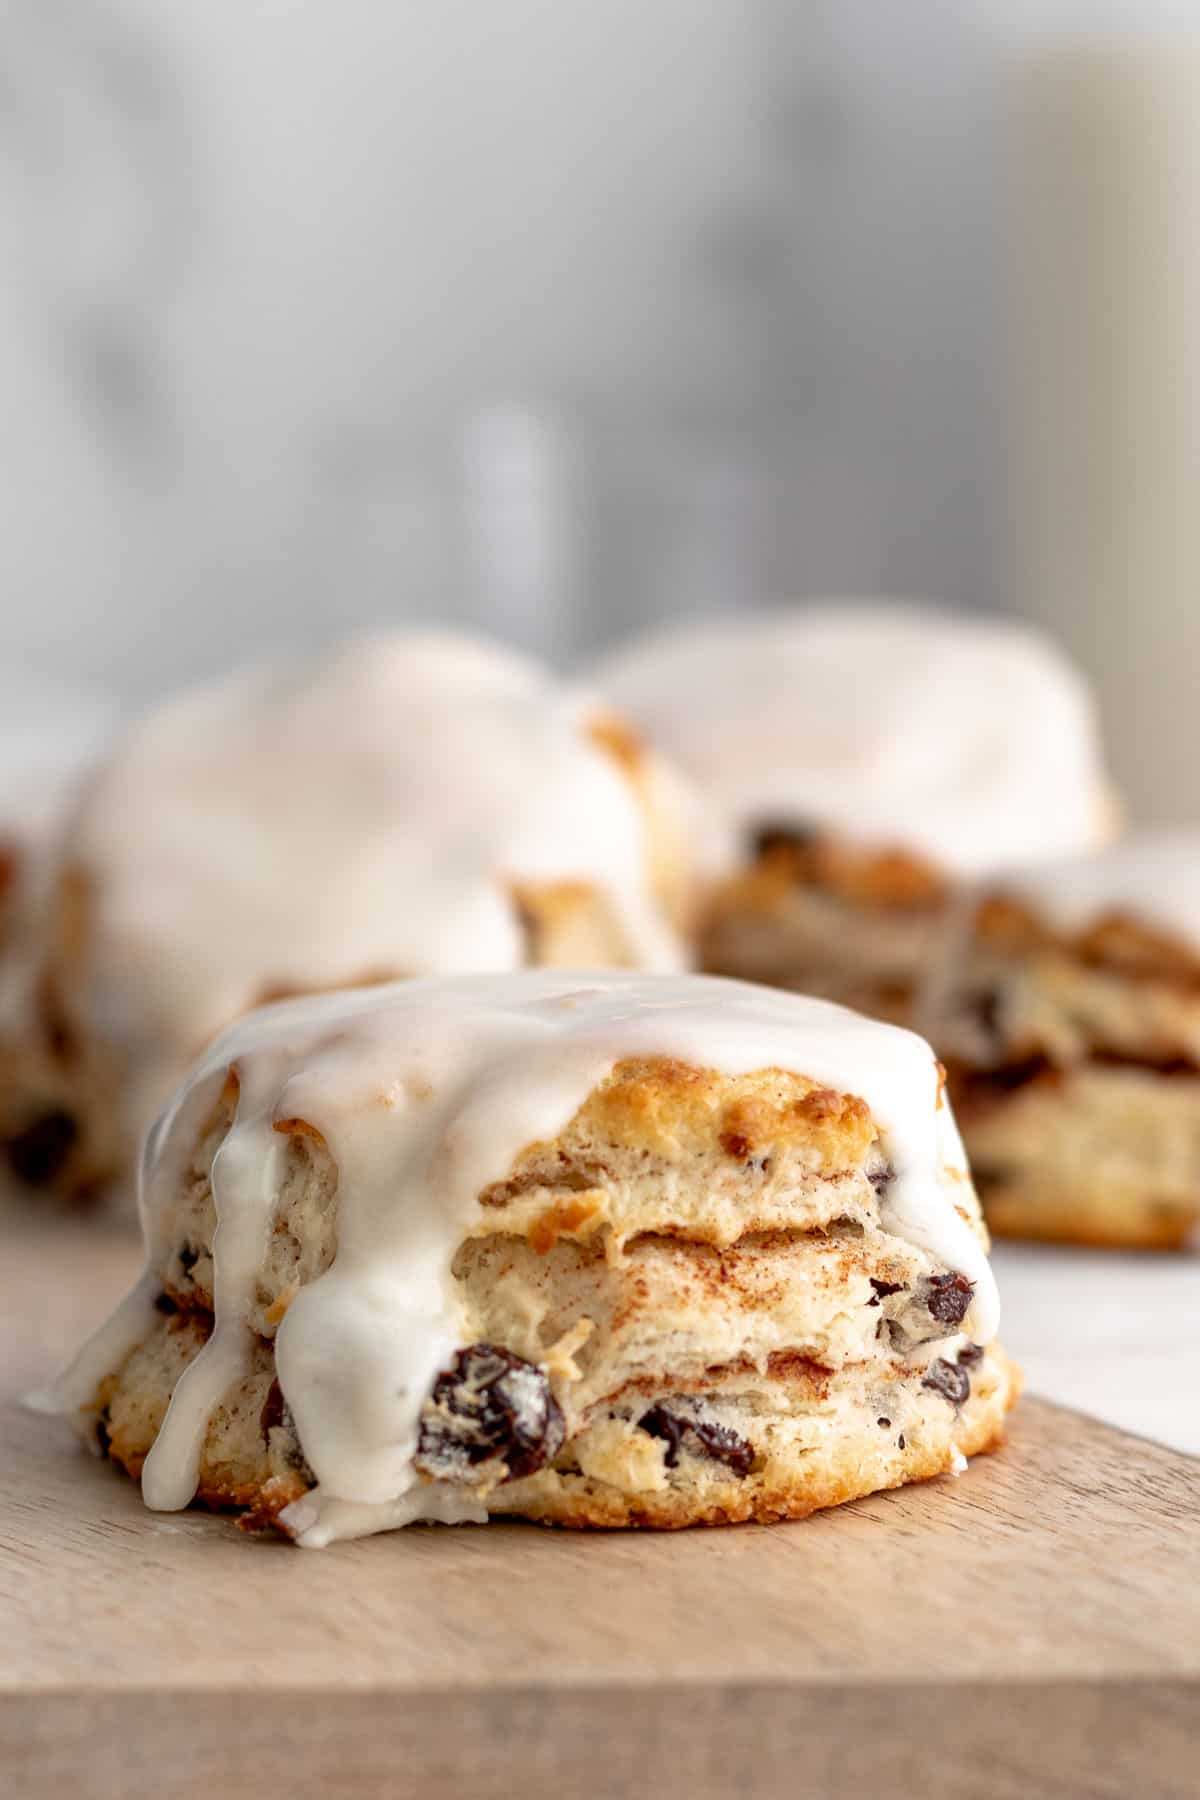 Cinnamon raisin biscuit with a white  glaze sitting on a wood board with more biscuits in the background